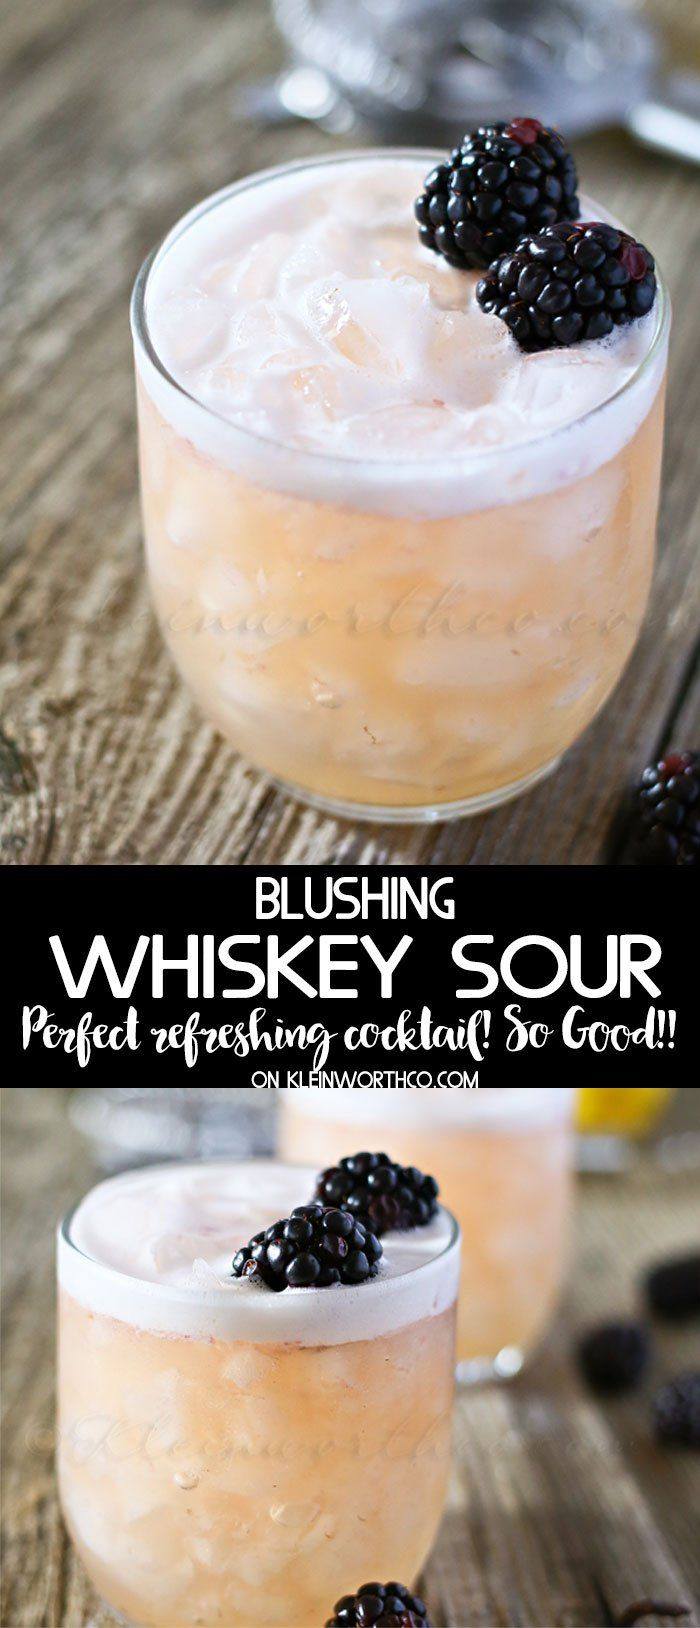 Photo of Blushing Whiskey Sour